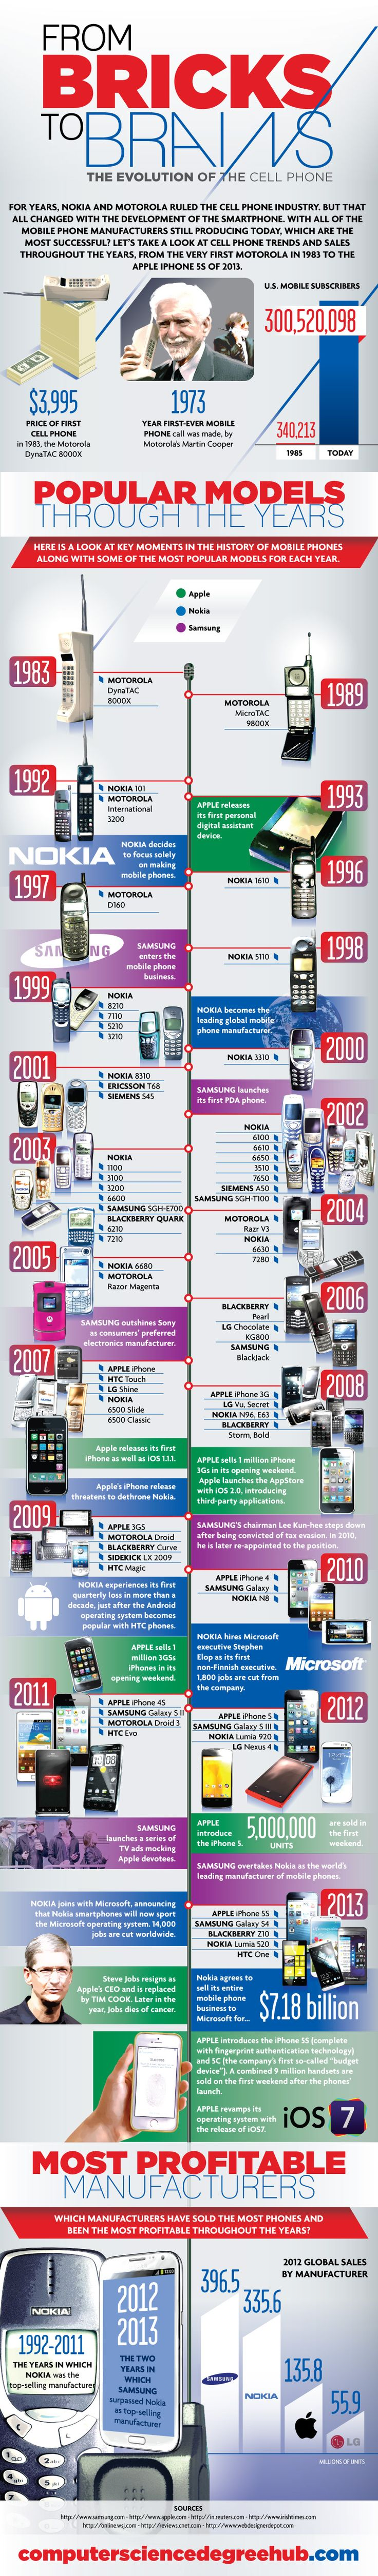 Bruce Sallan @Bruce Sallan  The Evolution of the cell phone: From Bricks to Brains [Infographic] via @ibucketbot